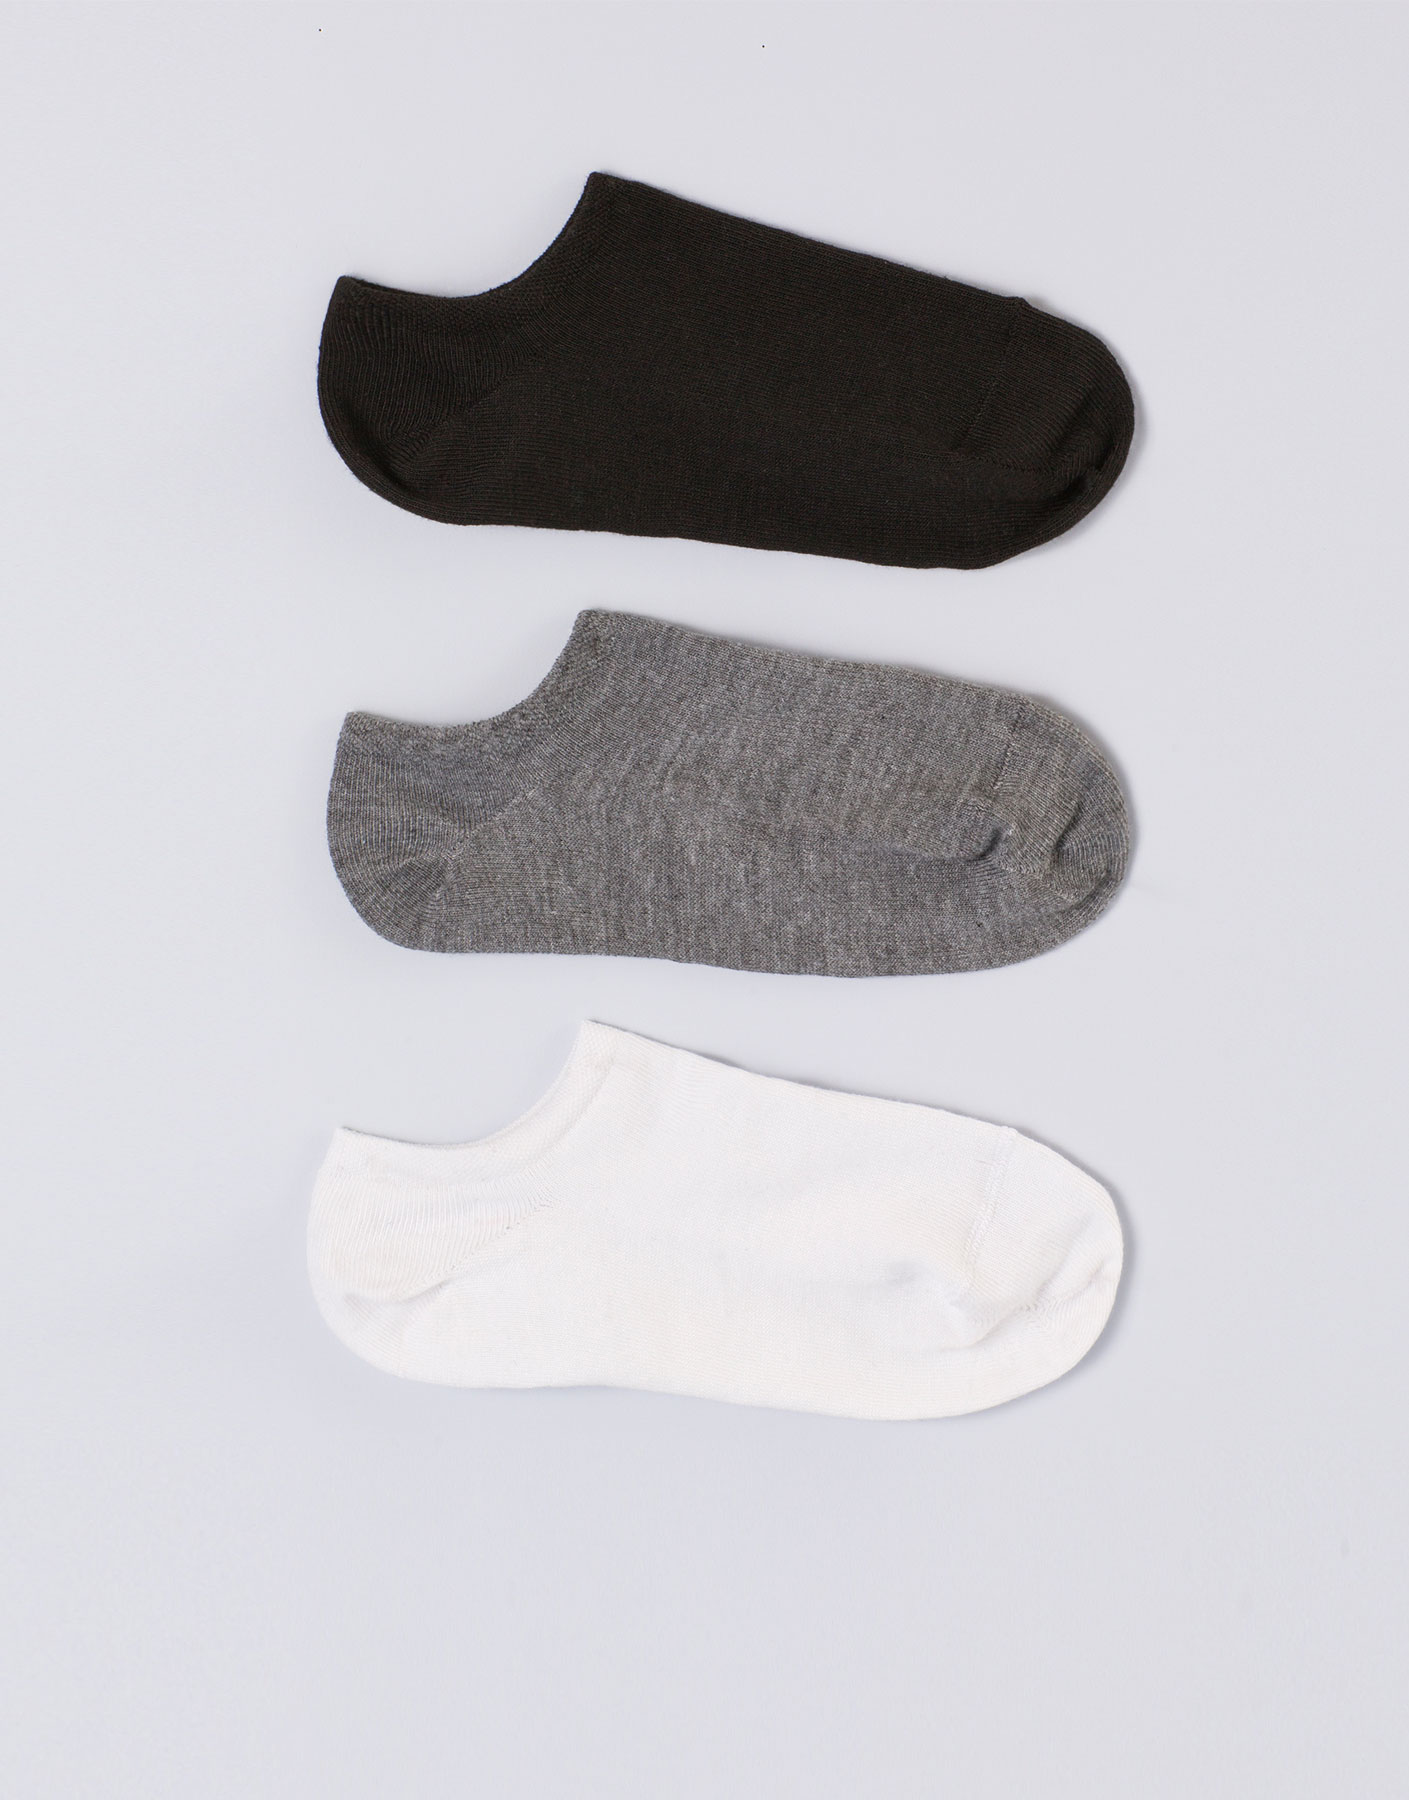 Pack of 3 invisible socks